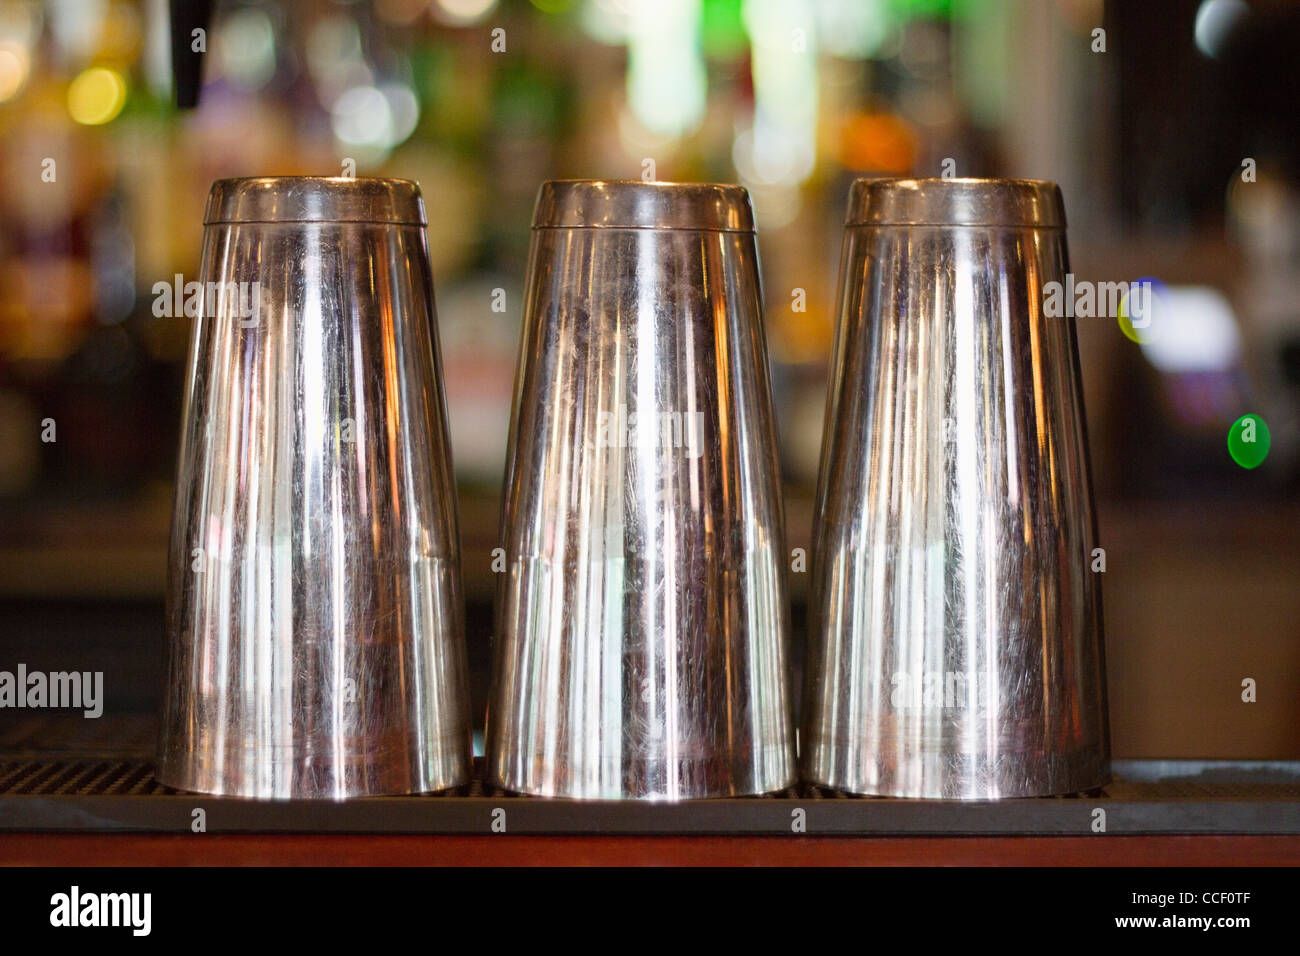 Close-up view of three steel glass kept upside down - Stock Image